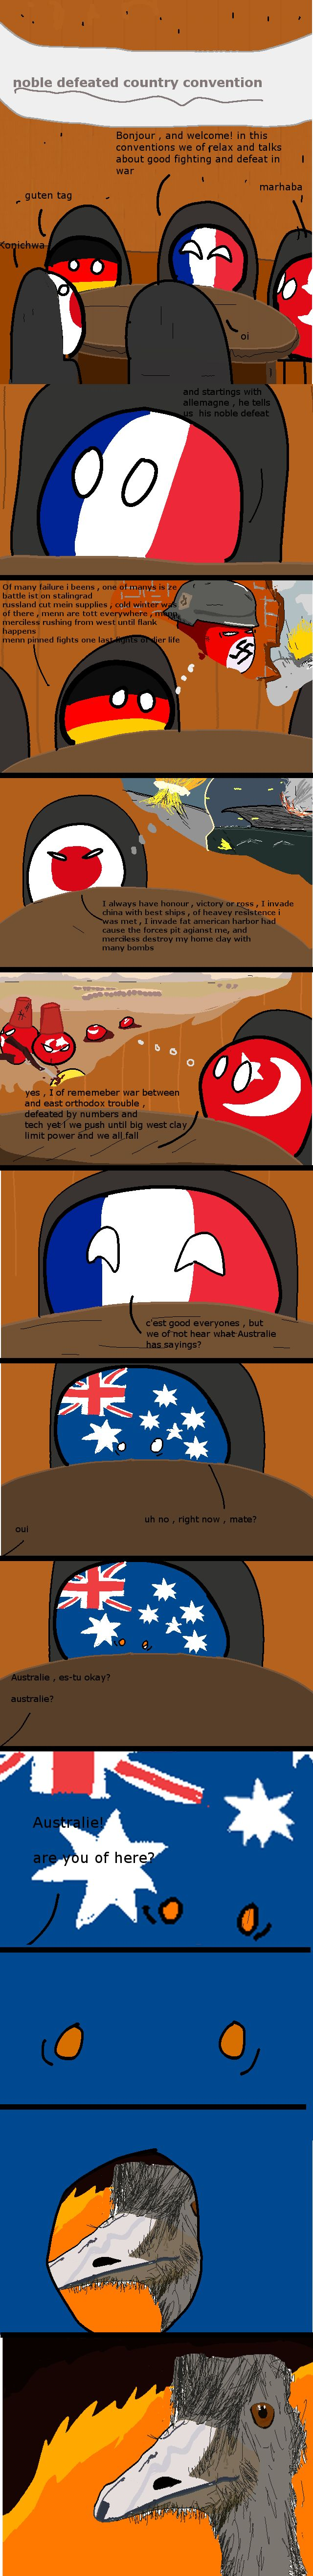 """The Great Emu War """"The Epic Defeat Relaxation Convention"""" ( France, Germany, Japan, Turkey, Australia ) by bluegad6 #polandball #countryball"""